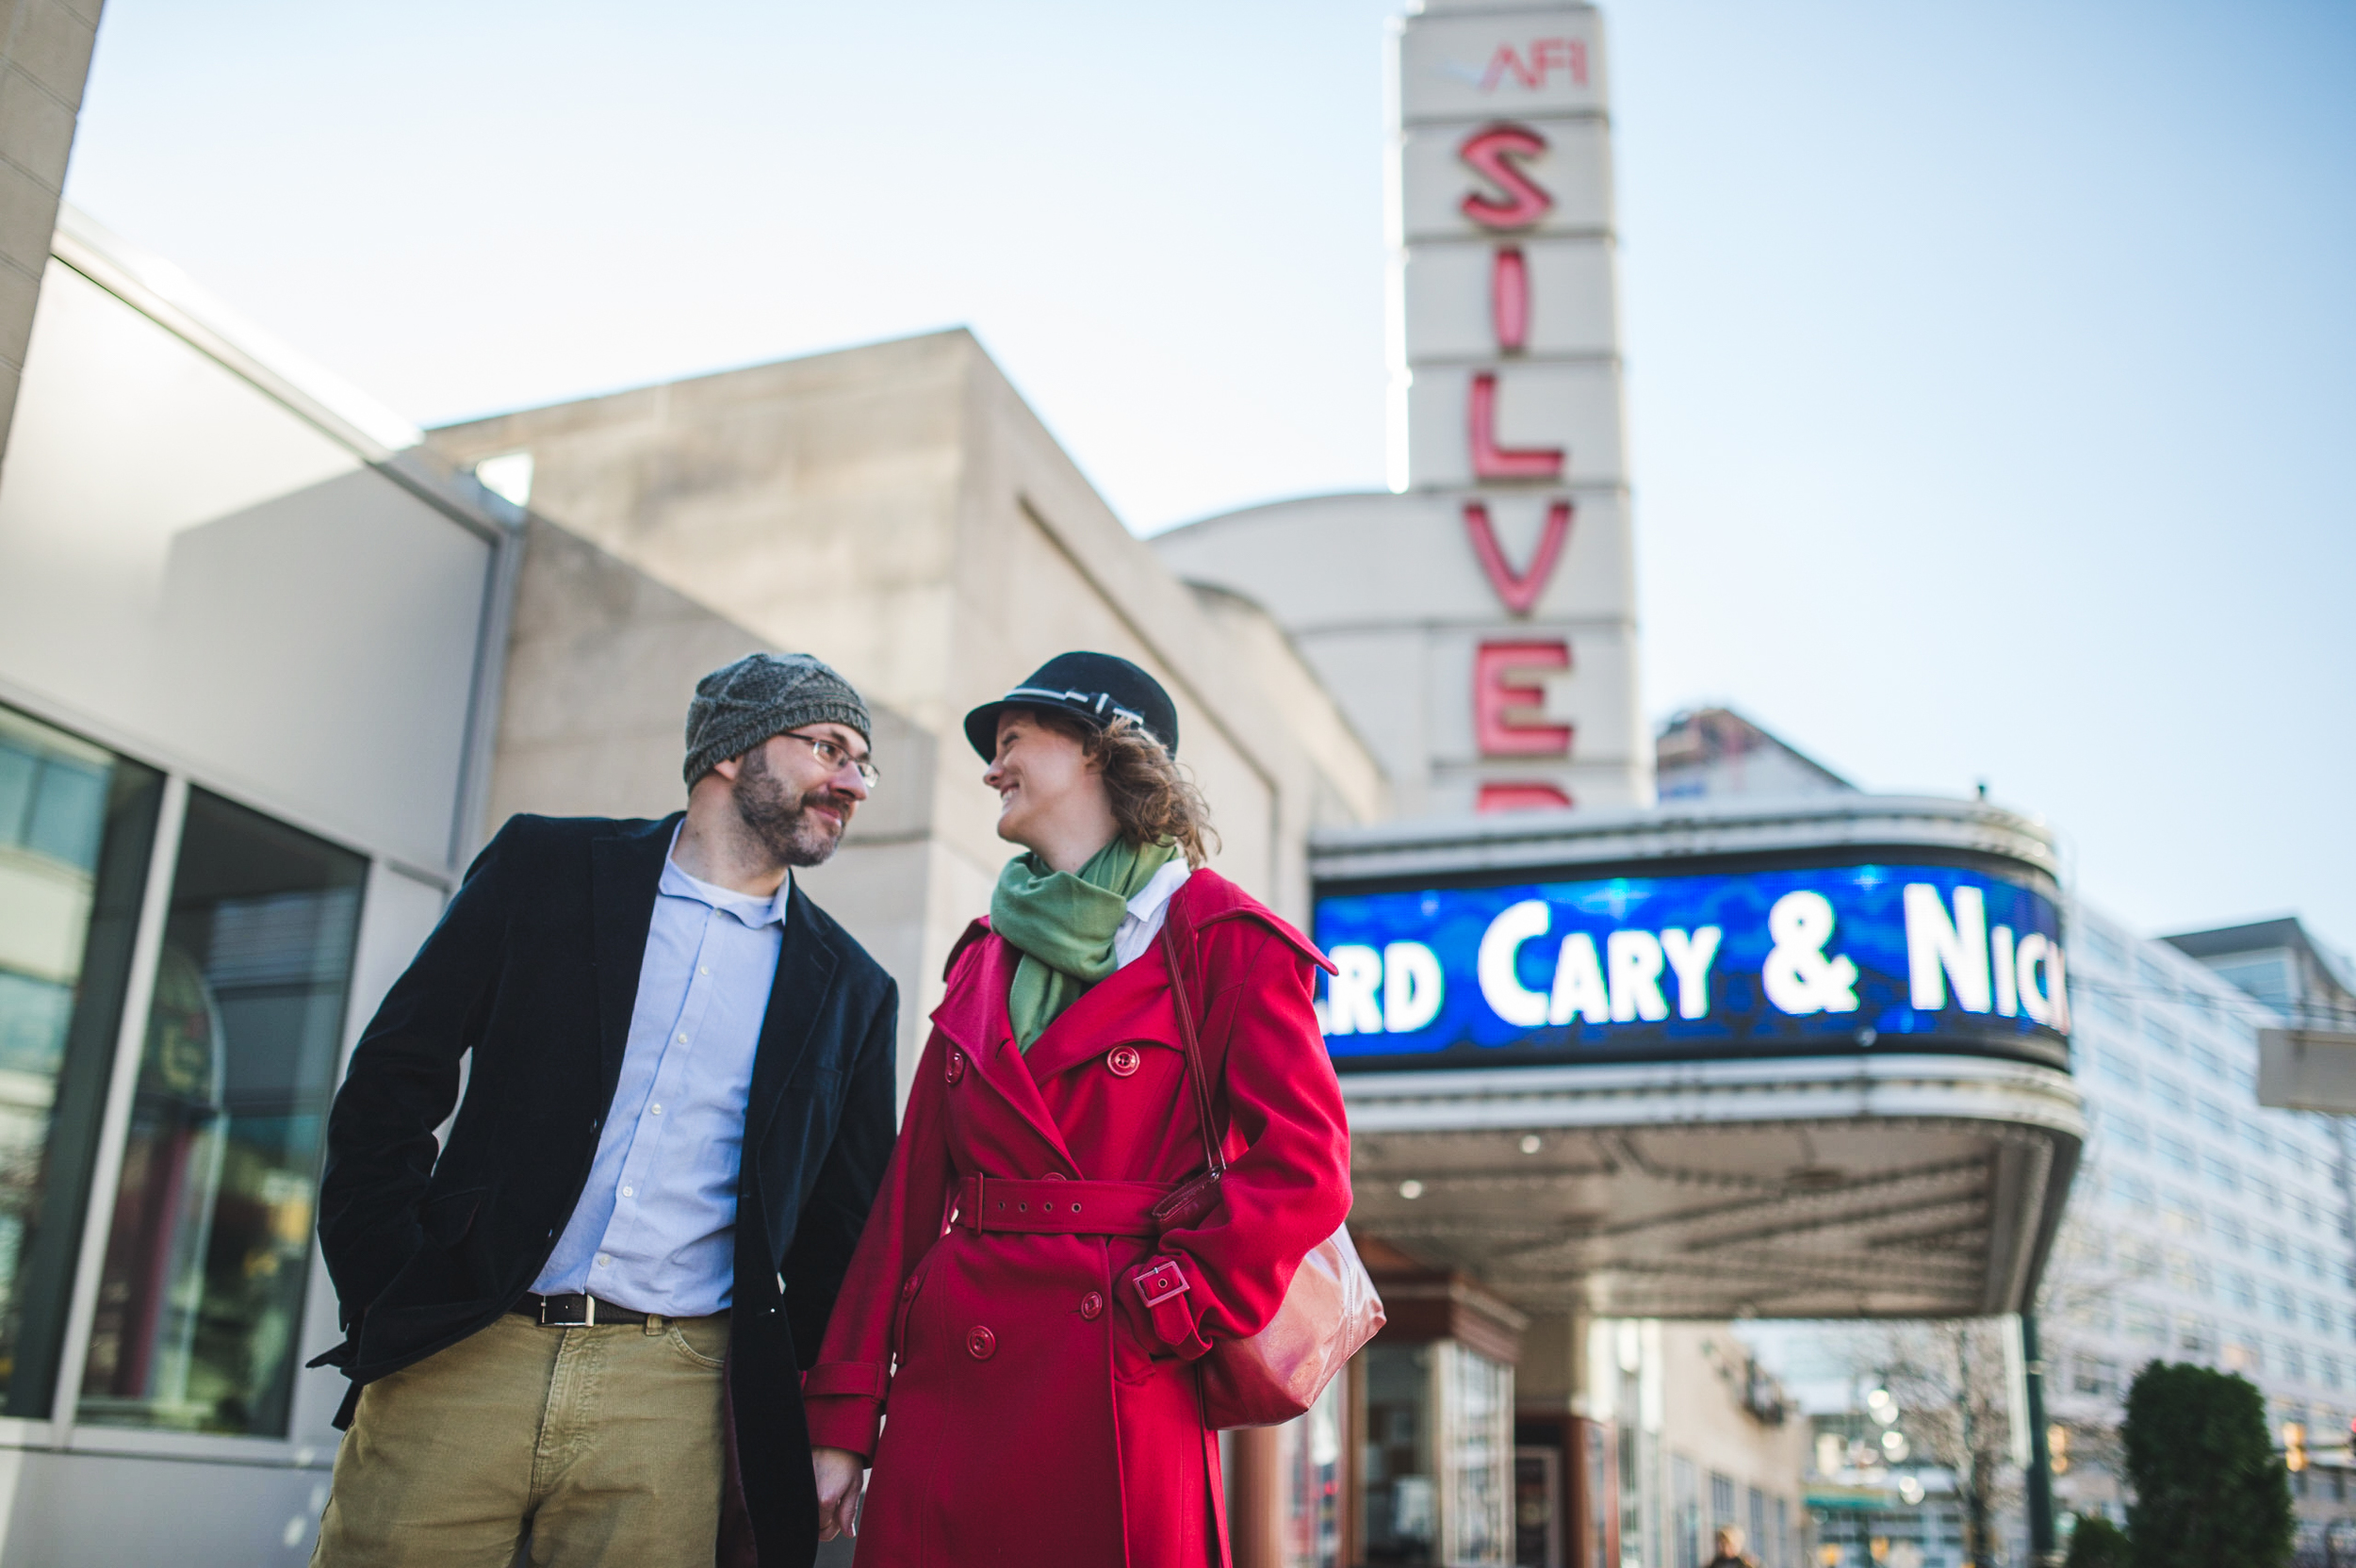 Silver Spring AFI Movie theater Engagement Session Photographer Mantas Kubilinskas-10.jpg